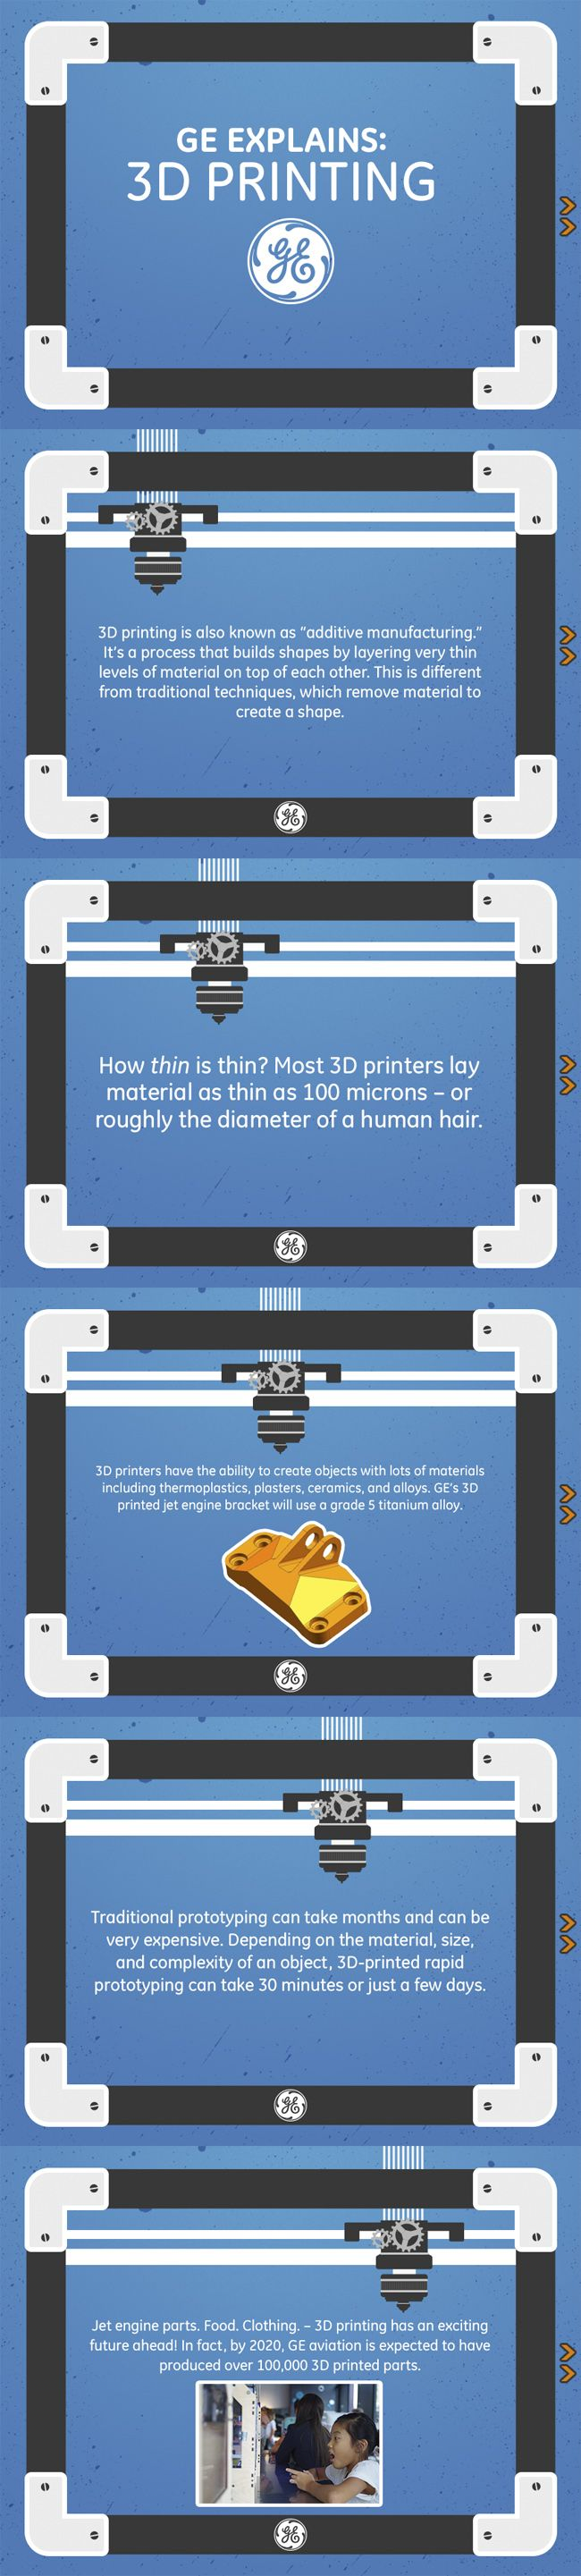 25 best ideas about printing process on pinterest 3d printing process